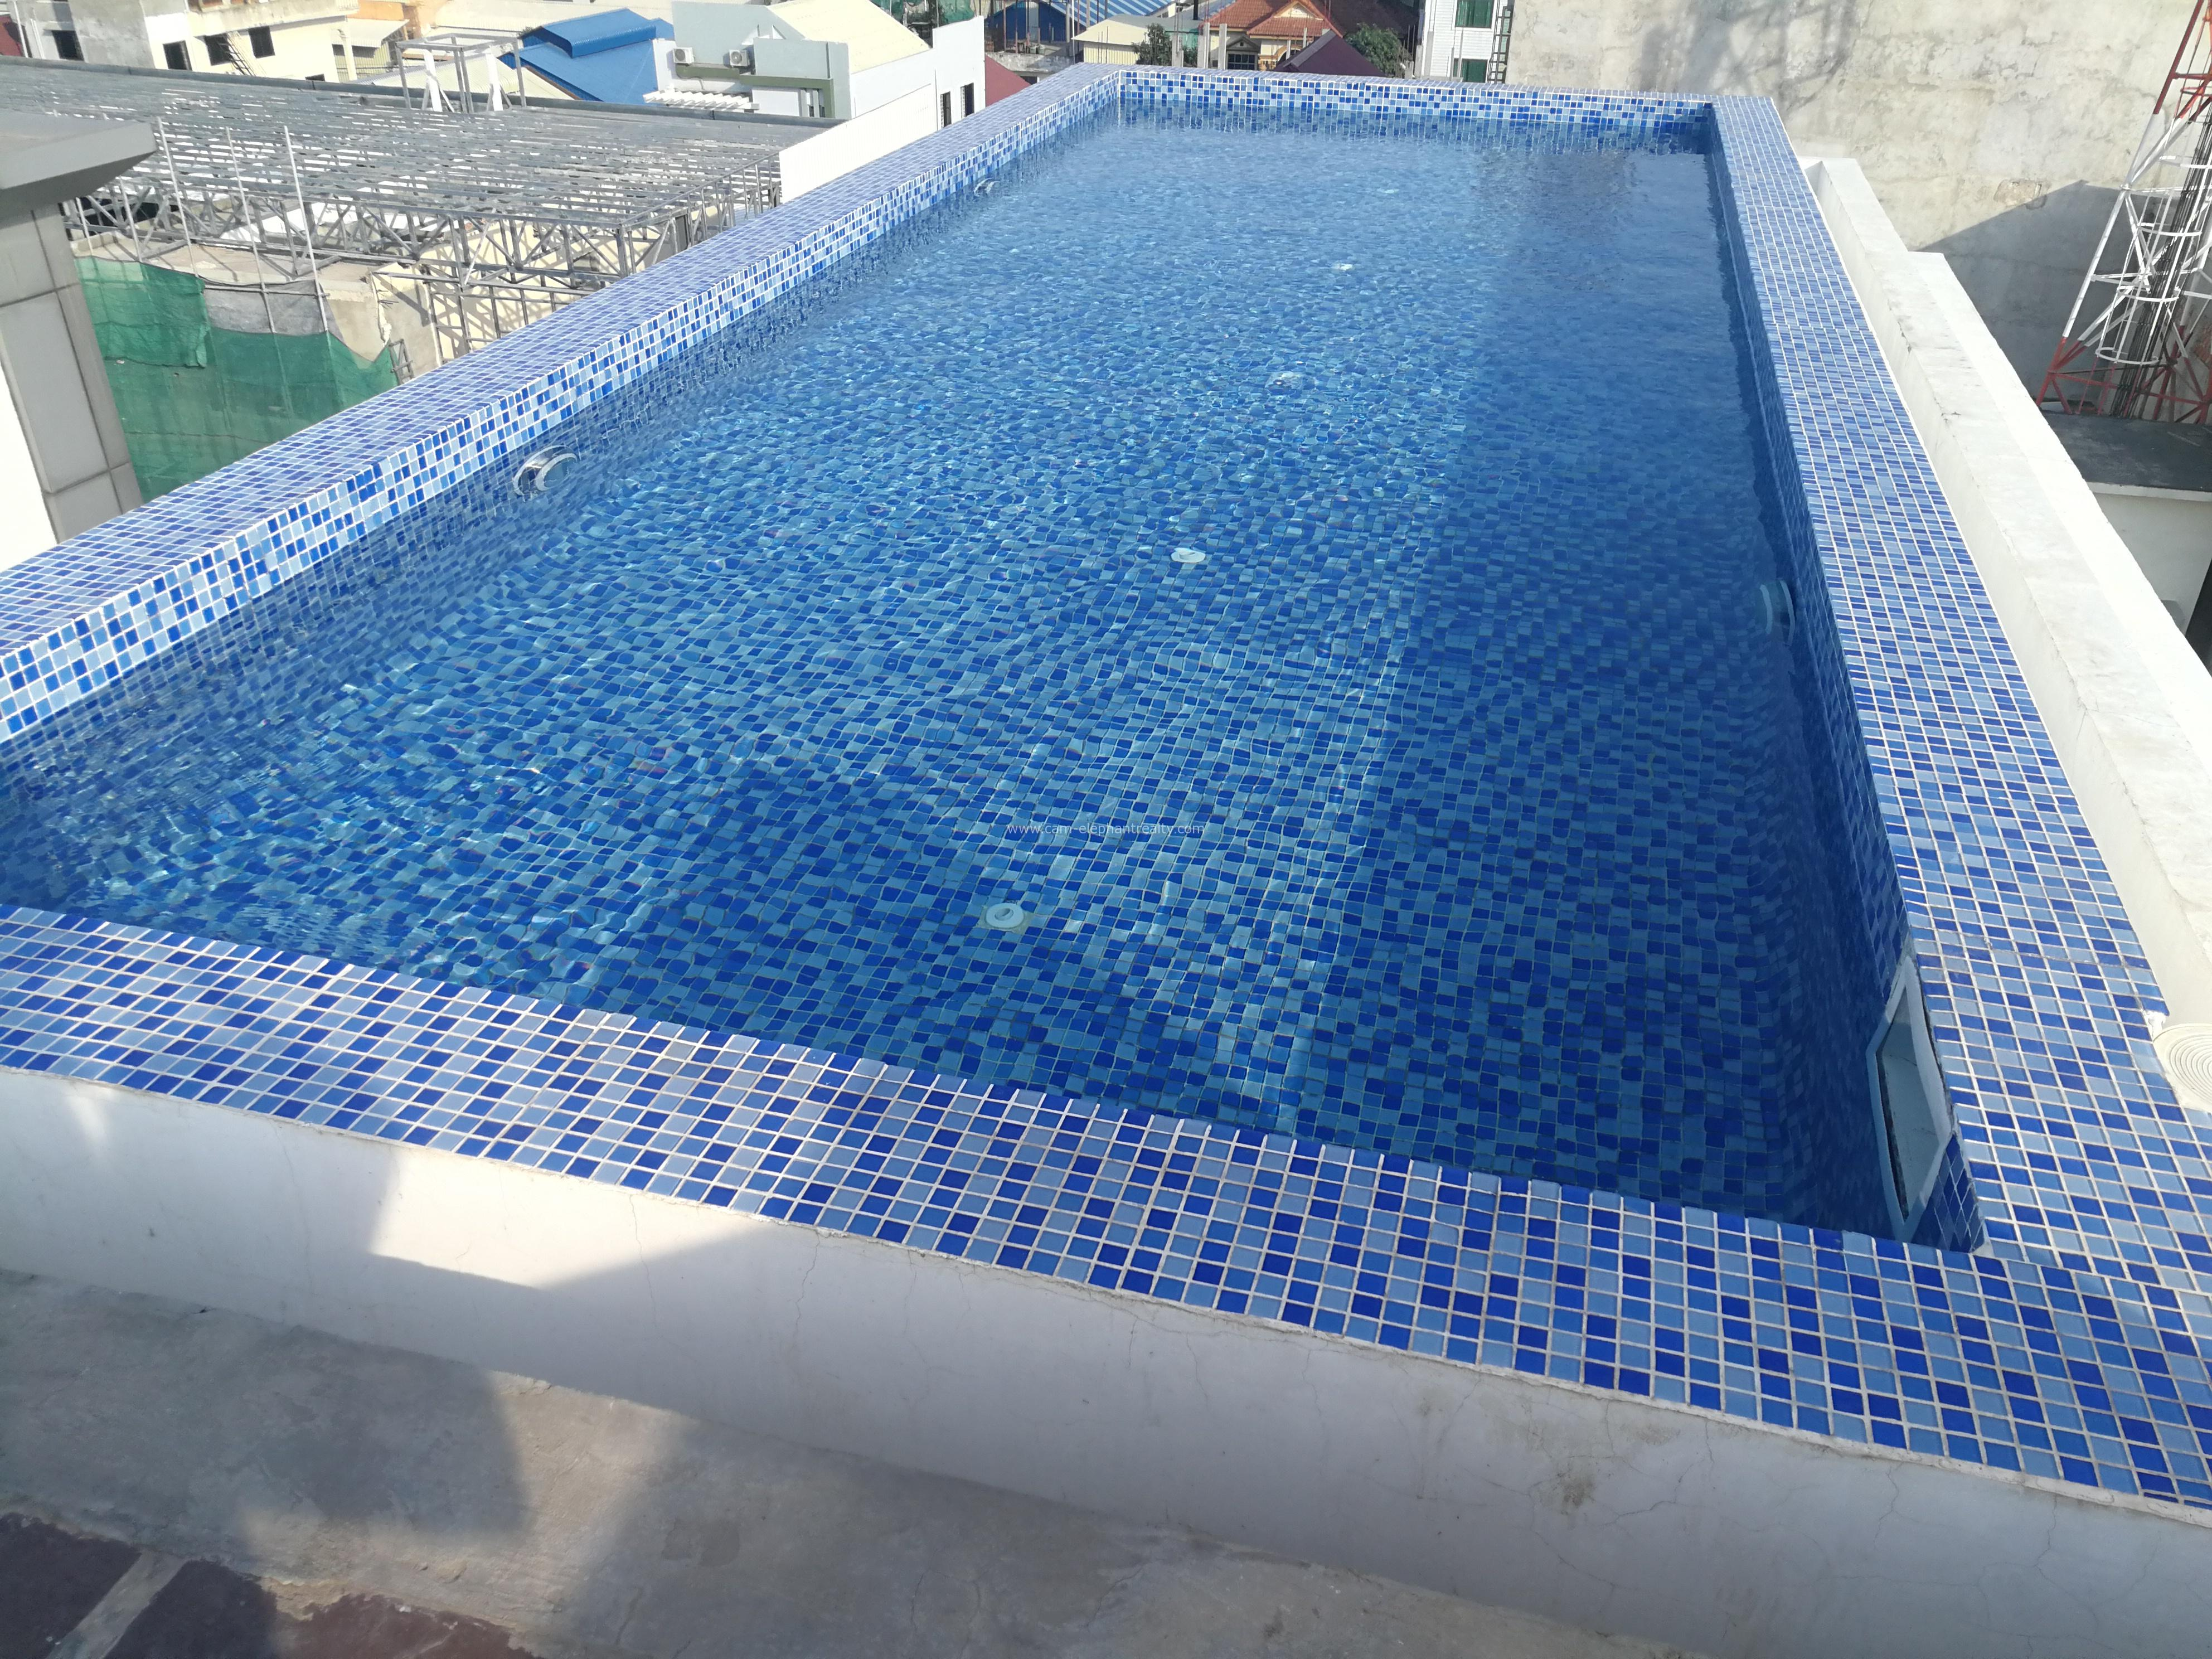 Pool Serviced Apartment 1Bedroom $350/month near Intercon Hotel